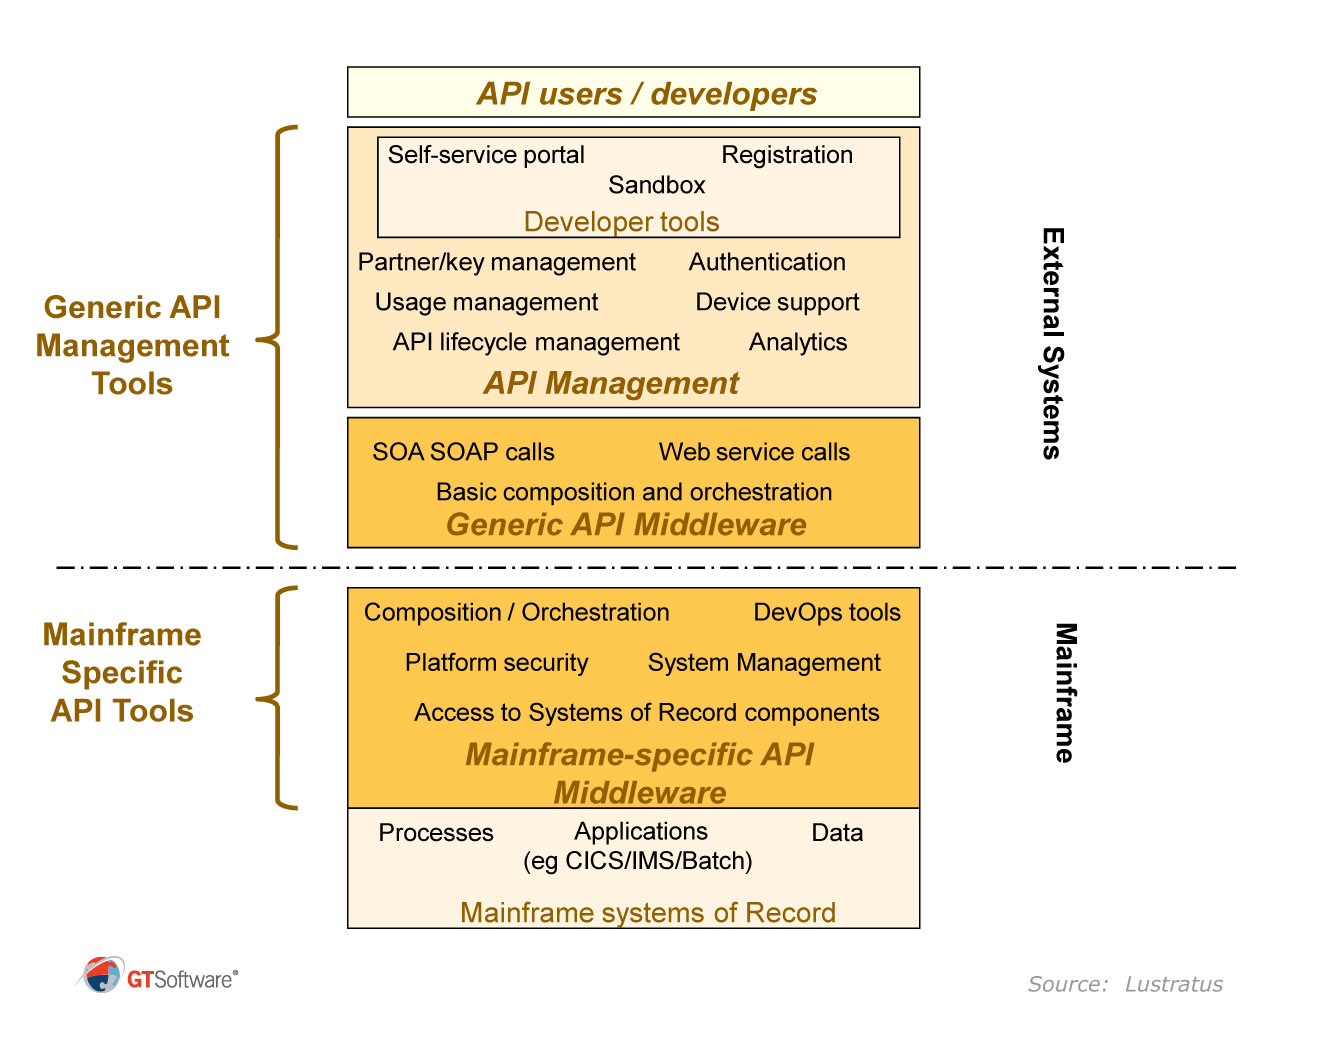 hight resolution of the diagram below indicates how the mainframe specific api tools such as gt software ivory and ibm z os connect relate to the generic api management tools